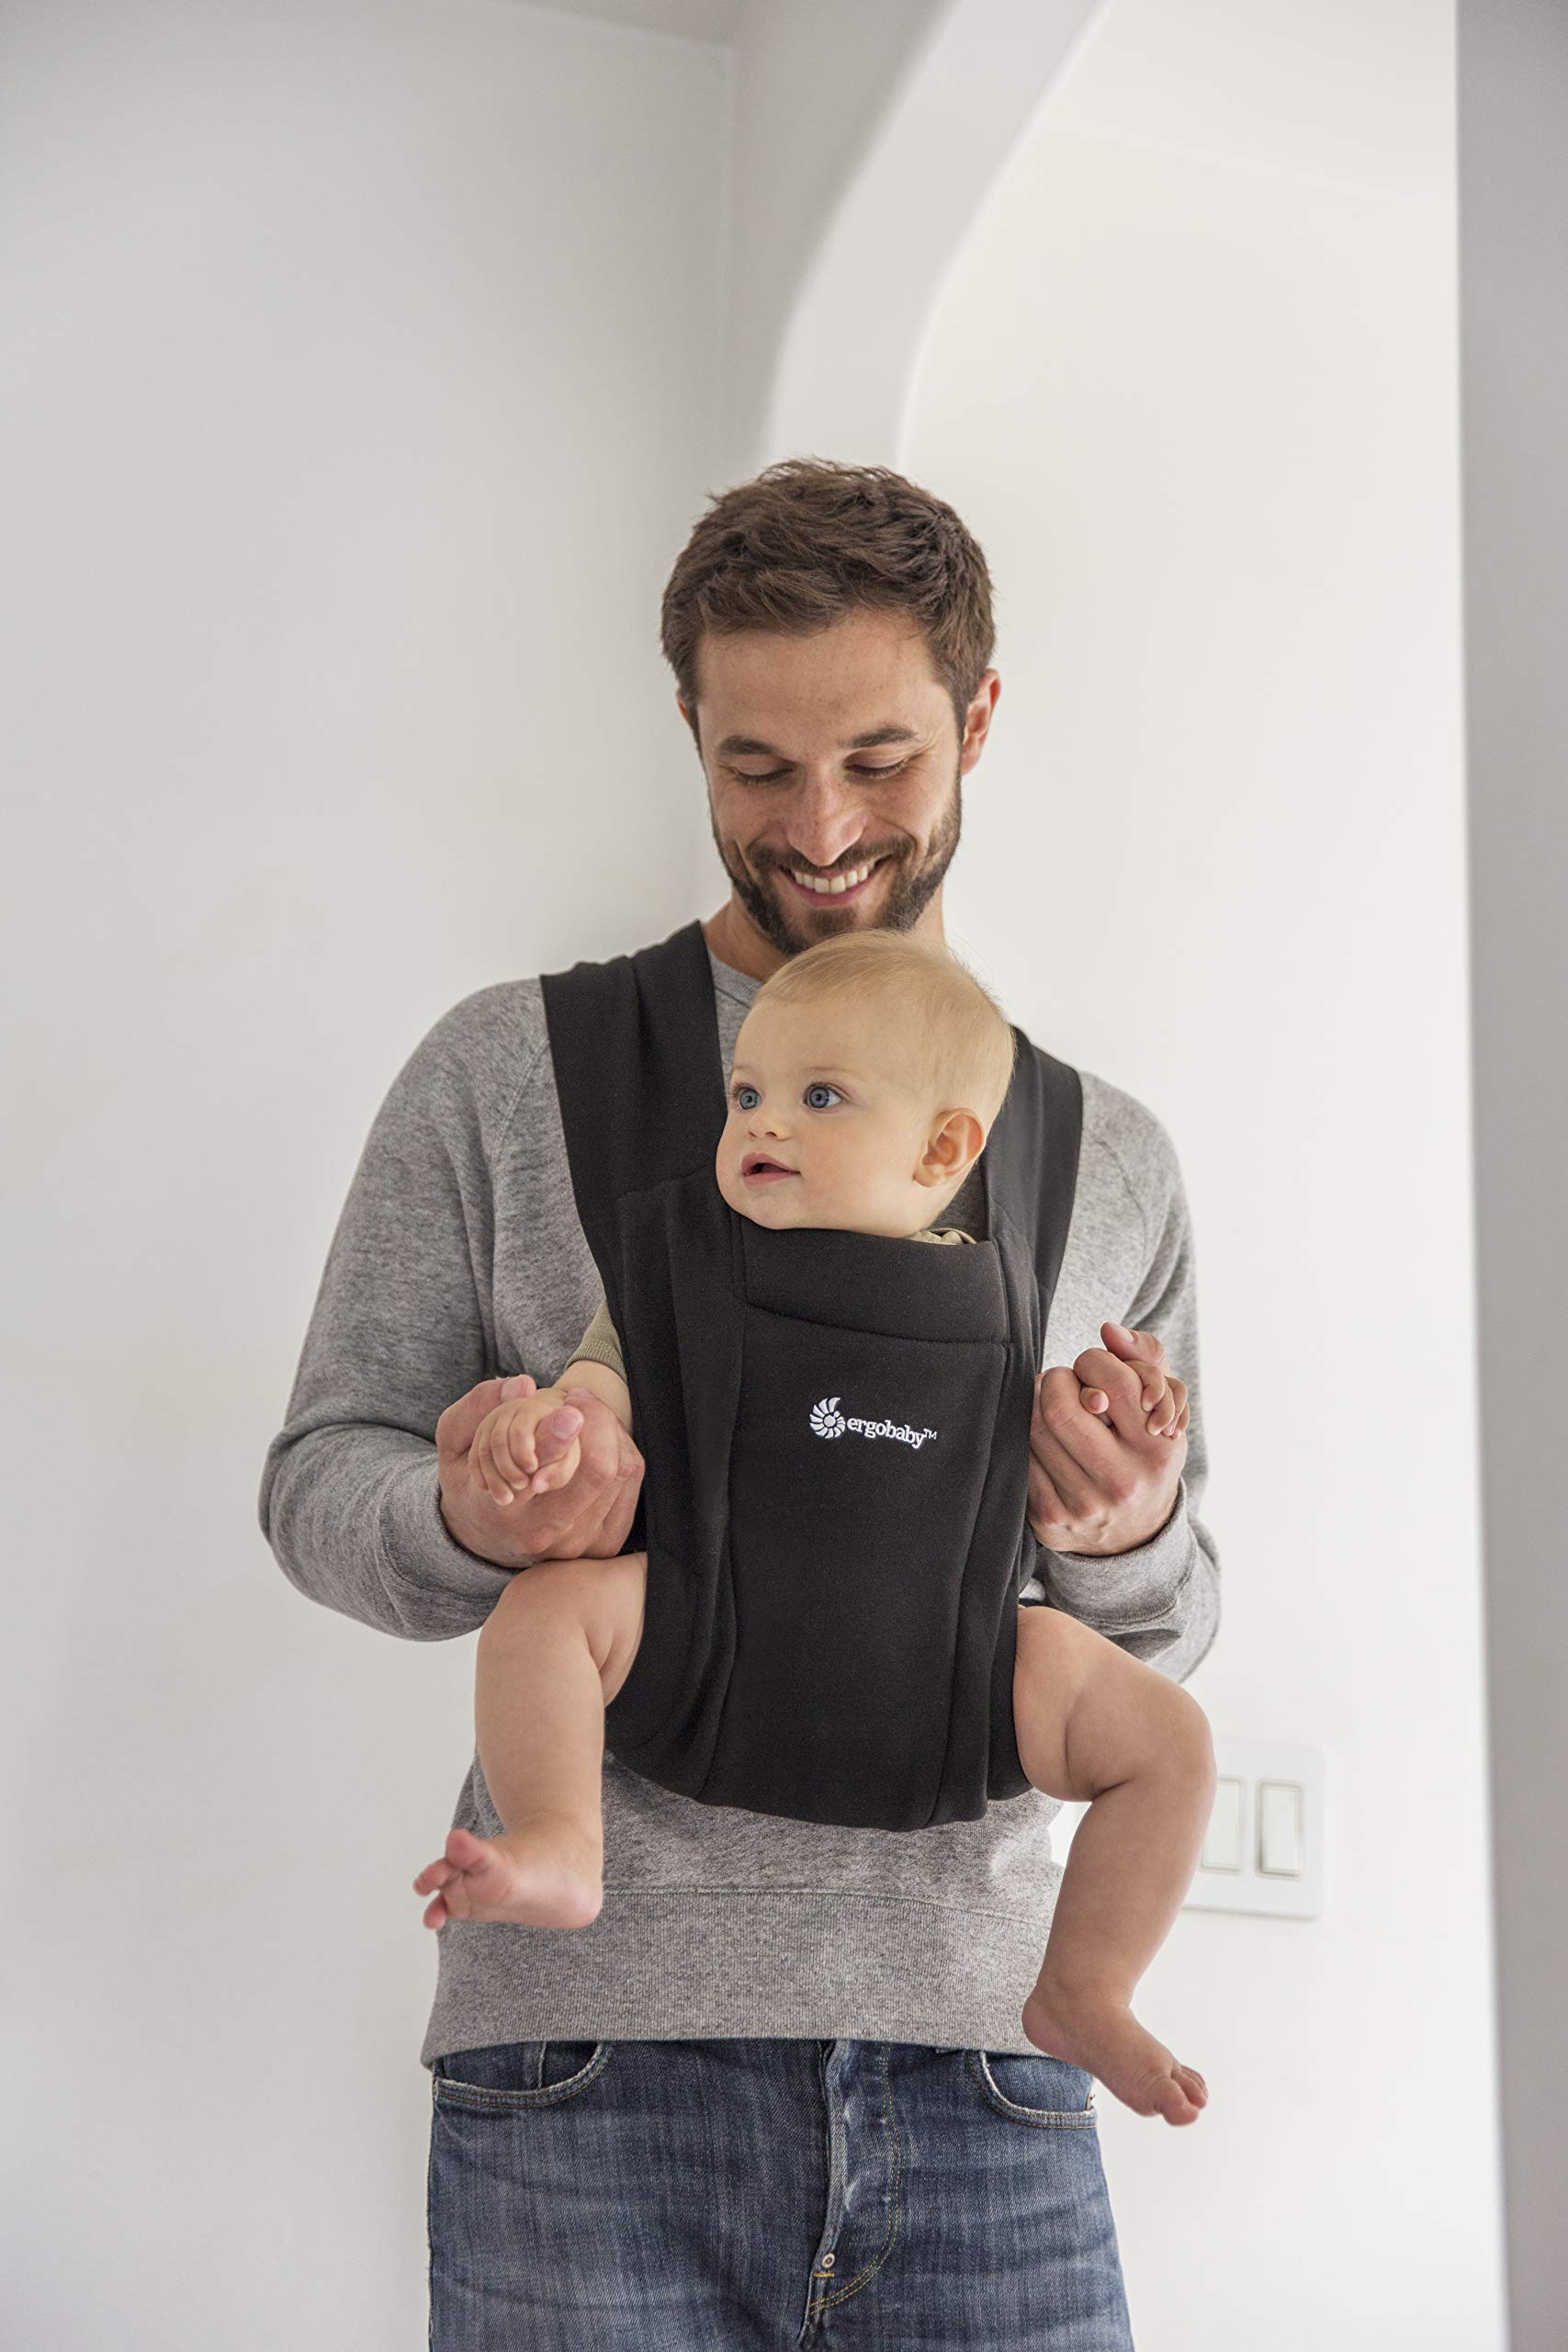 """ErgobabyEmbraceBaby Carrier for Newborns from Birth with Head Support, Extra Soft and Ergonomic (Pure Black) Ergobaby ERGONOMIC BABY CARRIER FROM BIRTH - Carry your newborn baby (3.2 - 11.3kg) snuggled close to you. The baby carrier supports the ergonomic frog-leg position (""""M"""" shape position) of the baby. NEW - The Ergobaby Embrace 2-position Carrier has been specially developed for newborns and babies. A baby carry system for quick and easy use. ULTRA-LIGHT & SUPER SOFT - Less material against the child and open-sided to allow good air circulation. Made from super soft jersey fabric, Oeko-Tex100 certified. Lightweight carrier (approx. 480g). 6"""